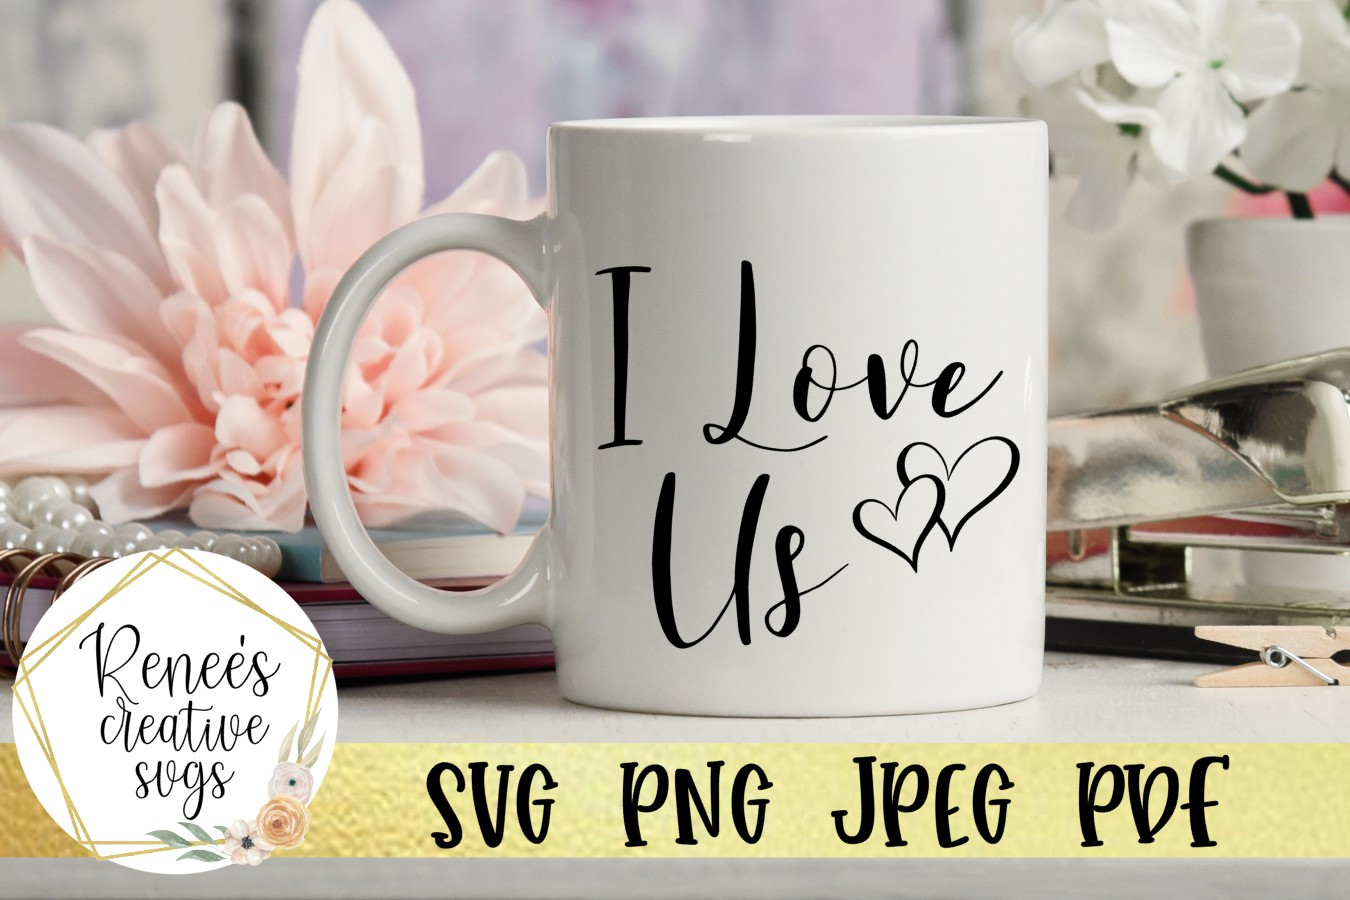 I love Us|Love Quotes | SVG Cut File example image 1